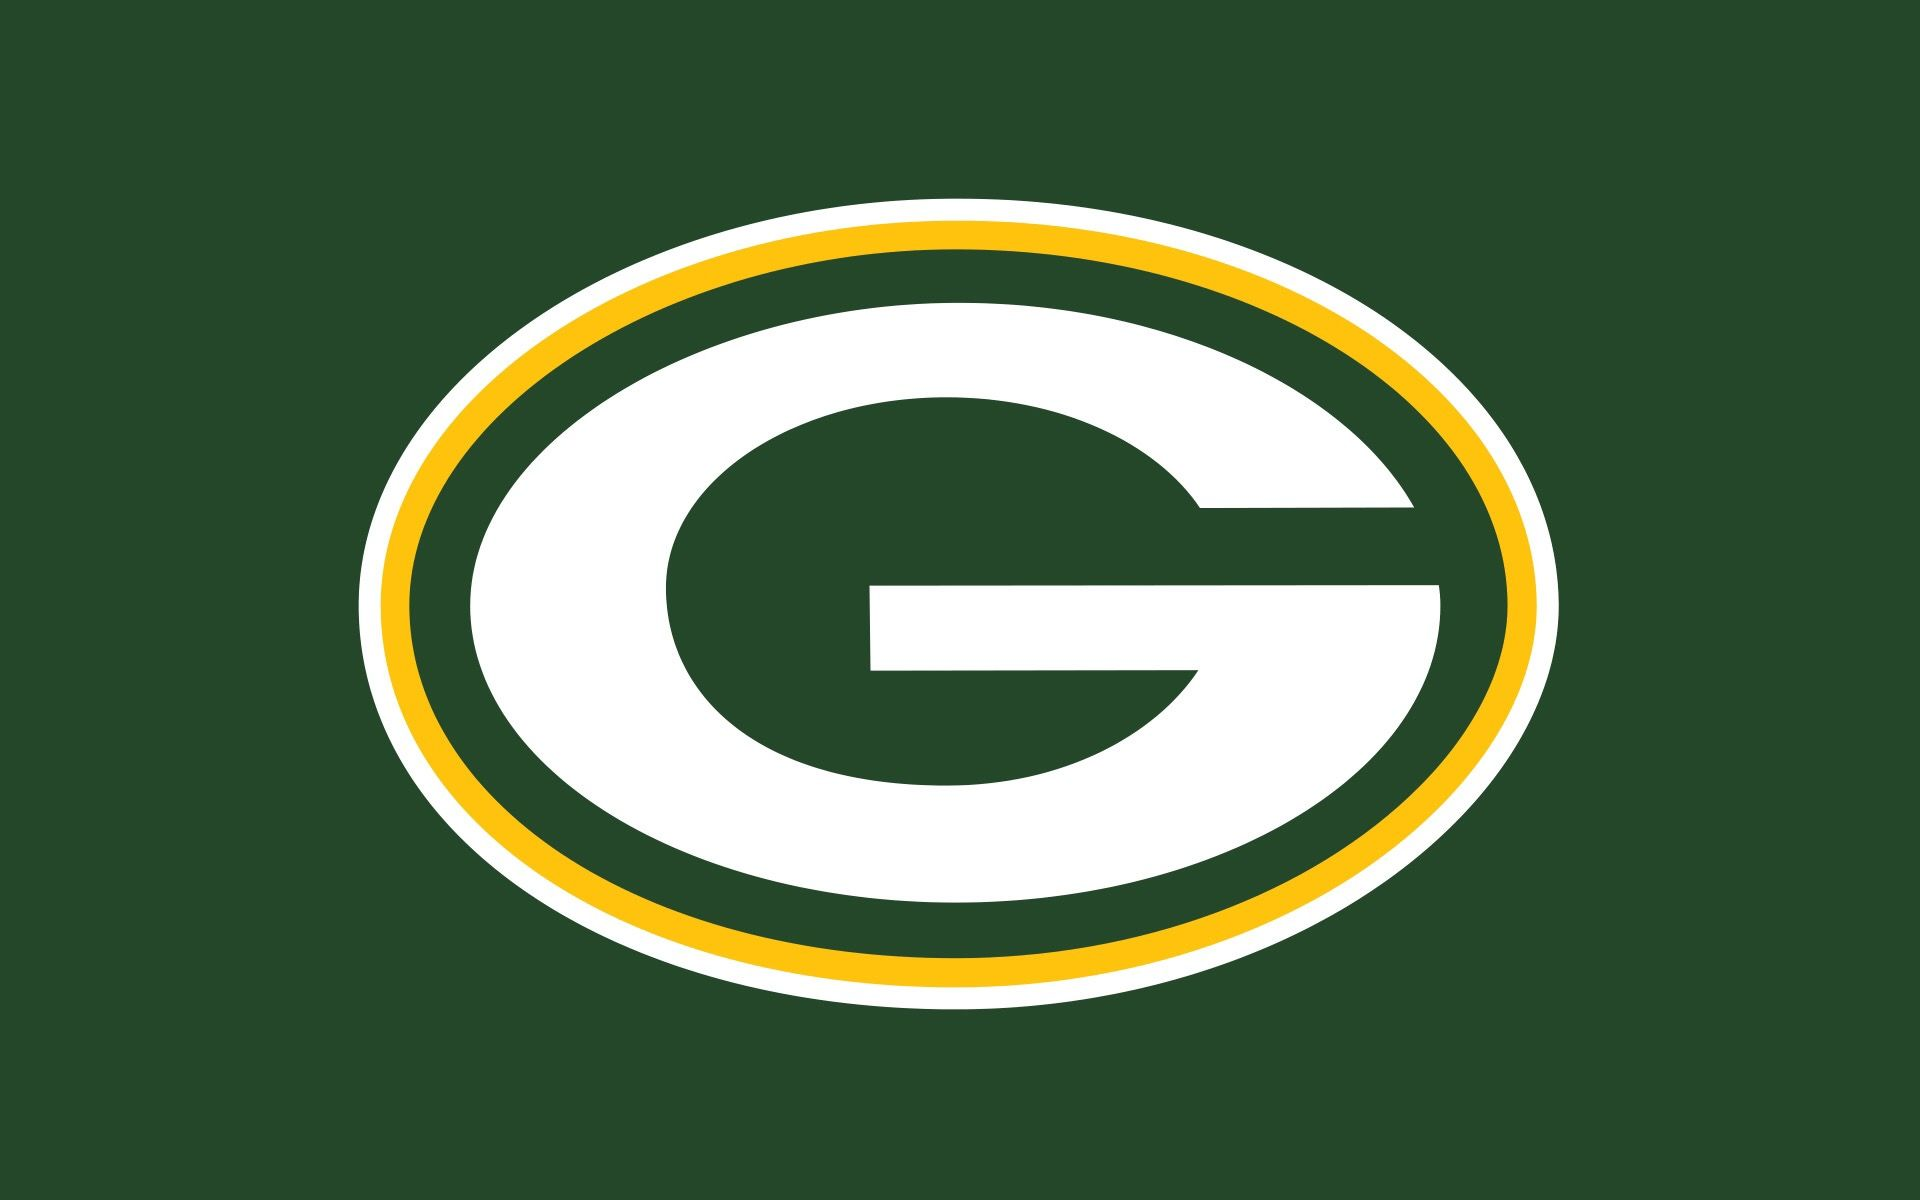 Pin By Hamed D On Sports Designs Green Bay Packers Wallpaper Green Bay Packers Logo Green Bay Packers